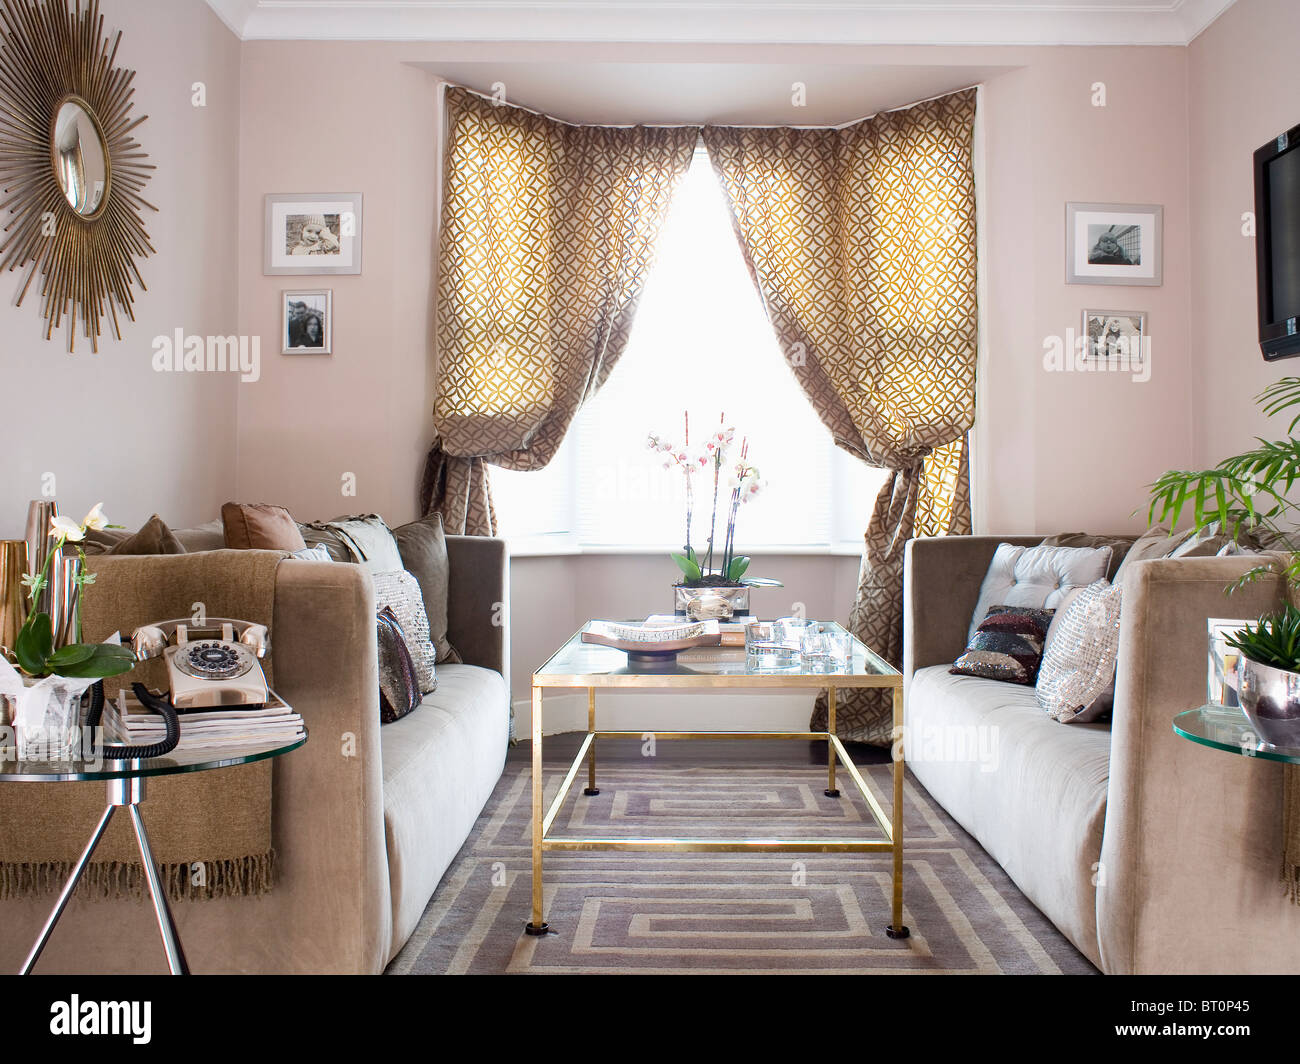 Delightful Patterned Curtains On Window In Modern Beige Living Room With  Patterned Rug And Glass Topped